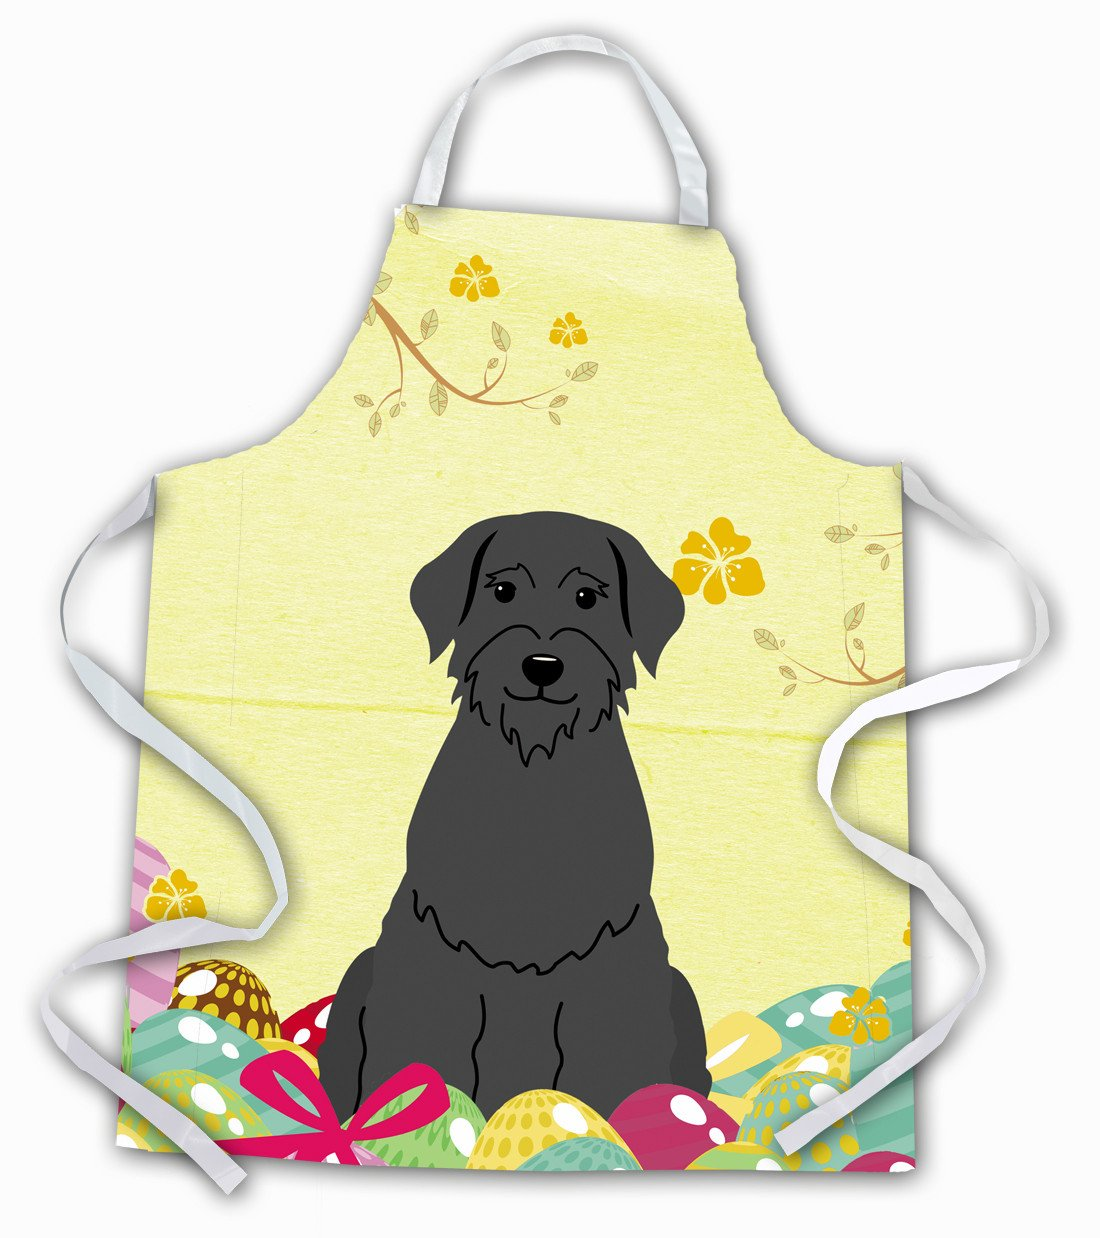 Easter Eggs Giant Schnauzer Apron BB6066APRON by Caroline's Treasures